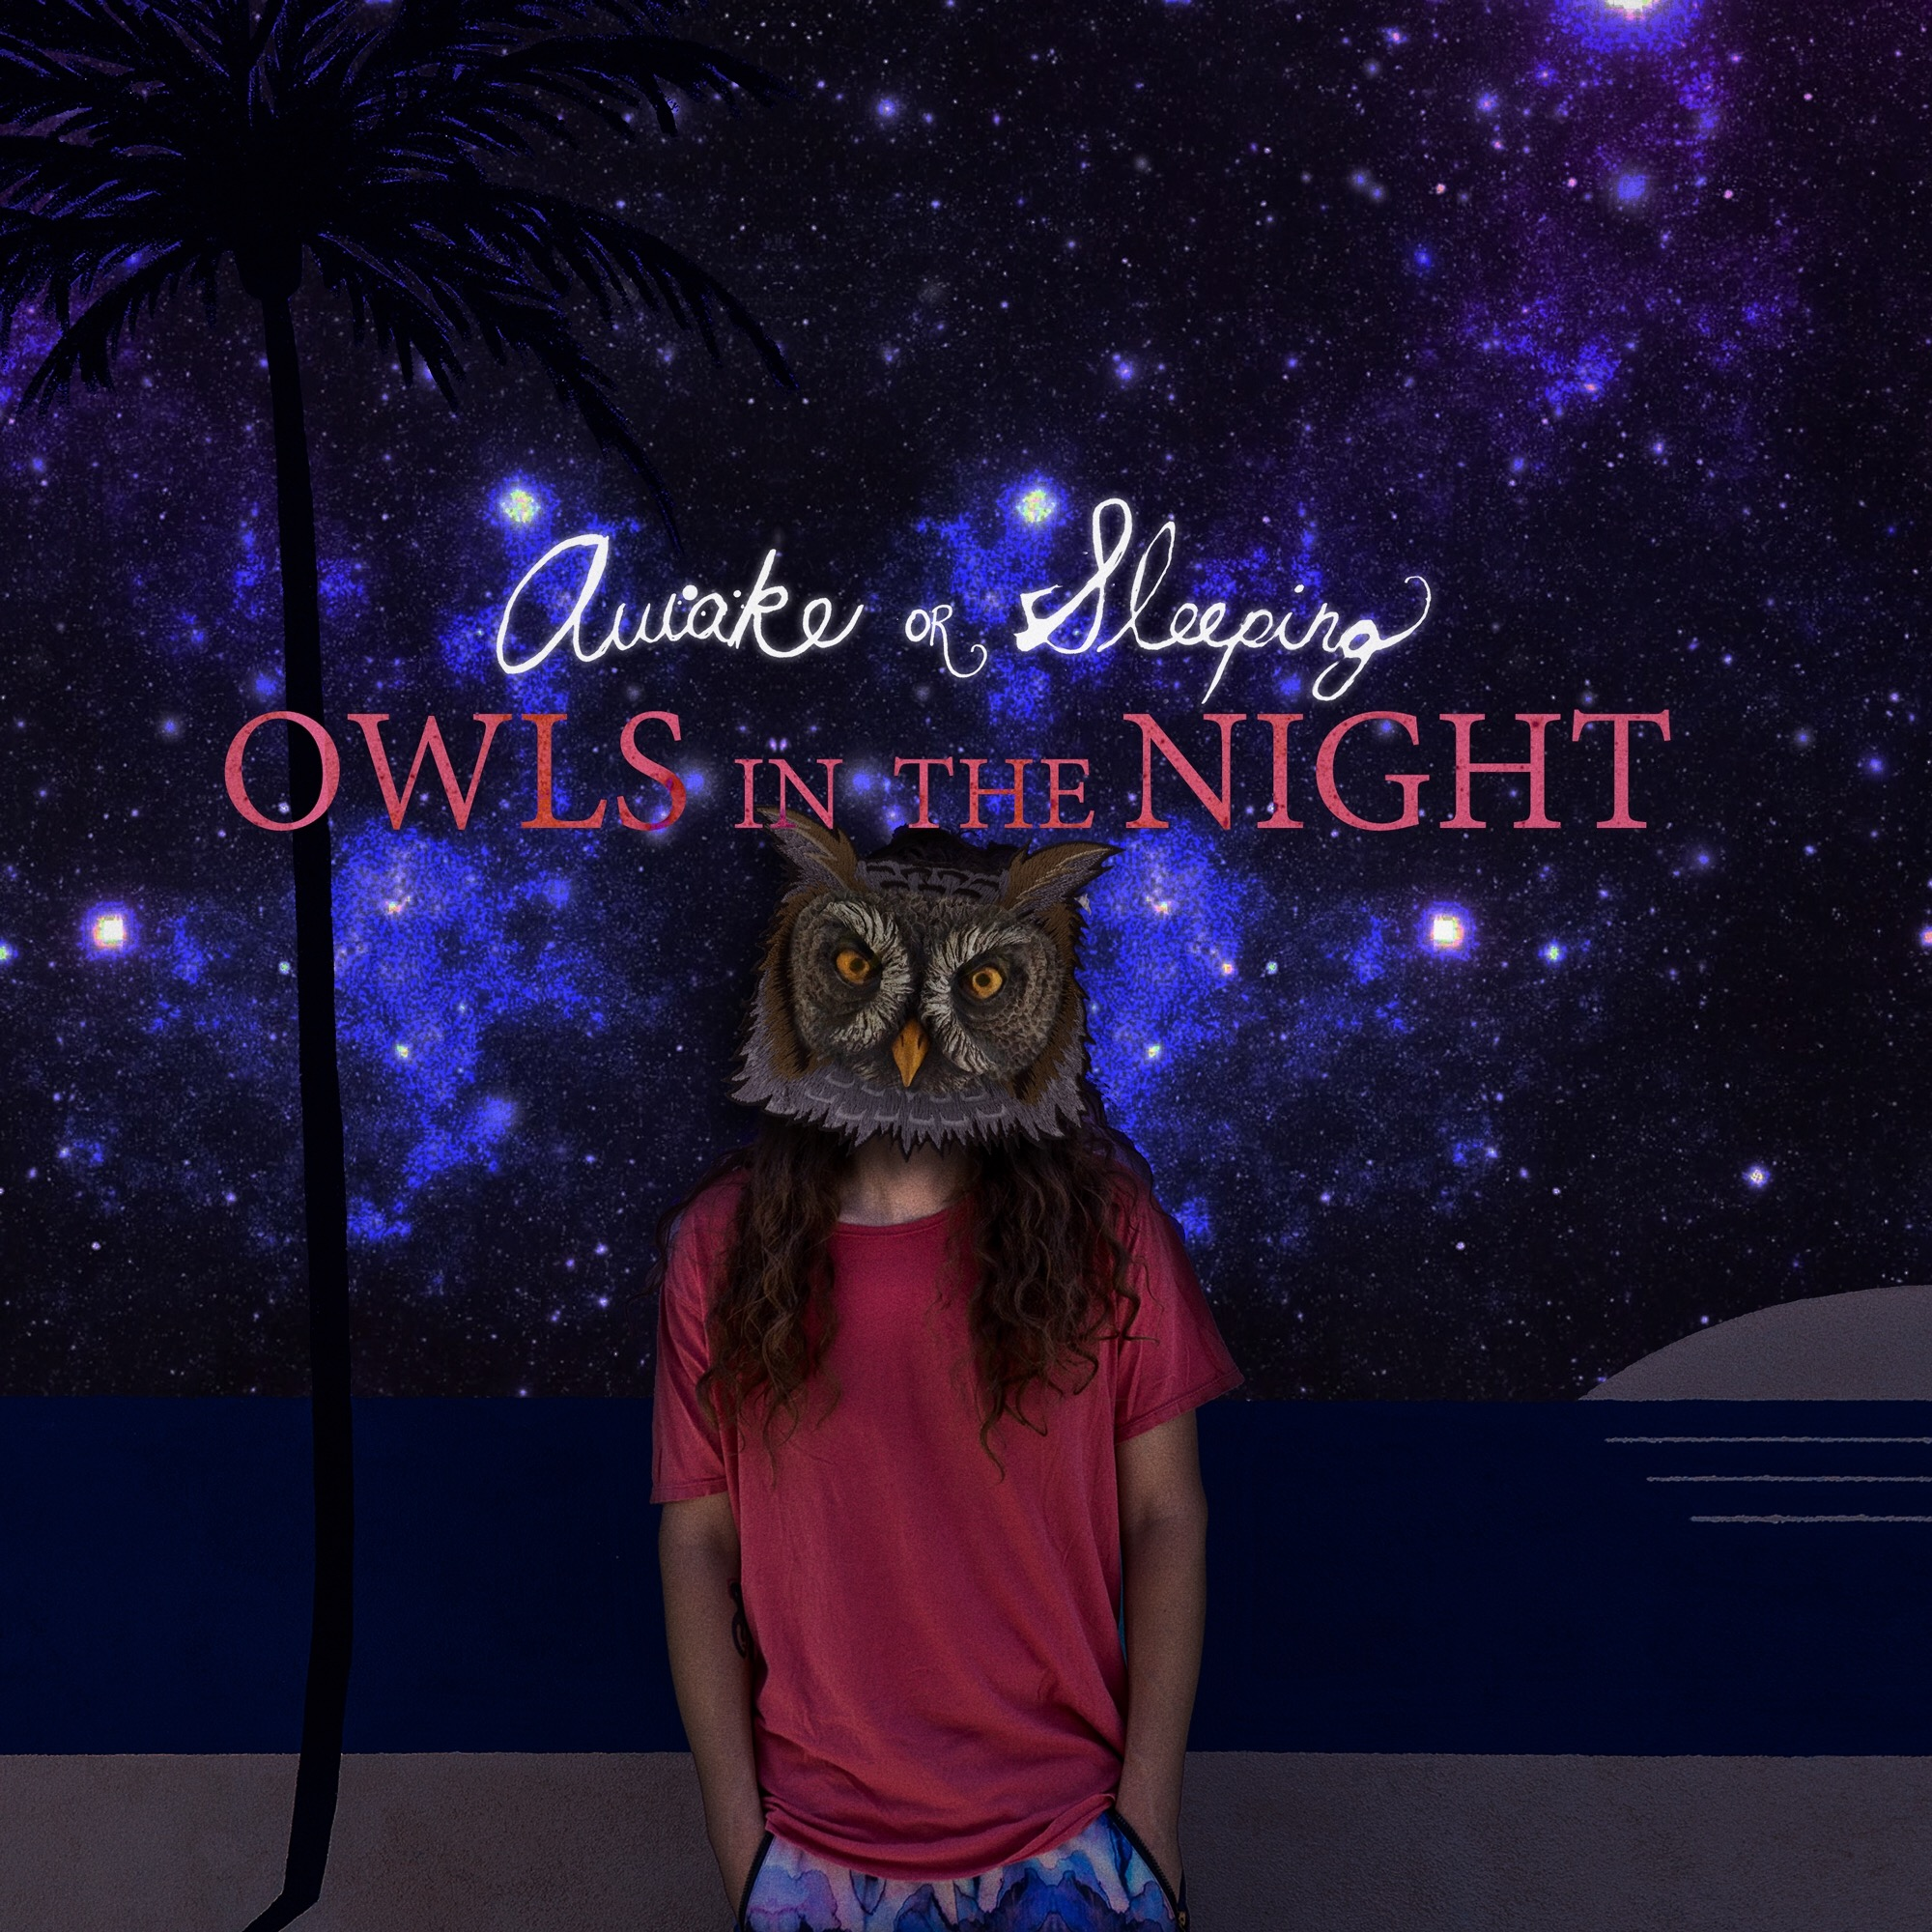 Awake-or-Sleeping-Owls-in-the-Night.JPG